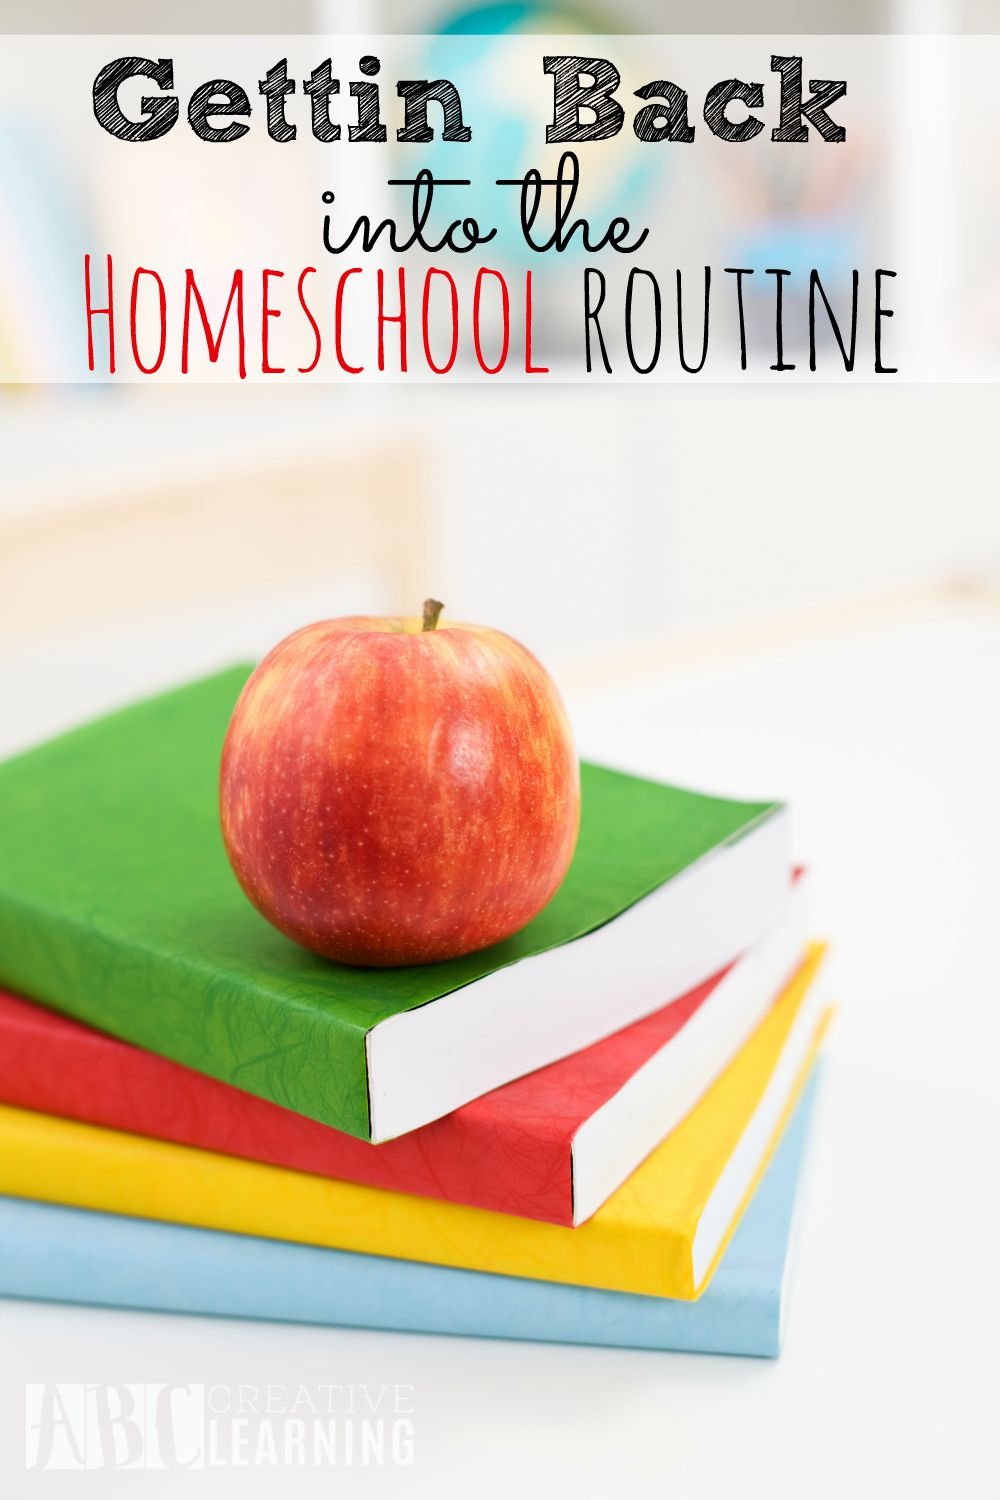 Getting Back Into the Homeschool Routine isn't easy, but necessary to get your year off to a positive start!